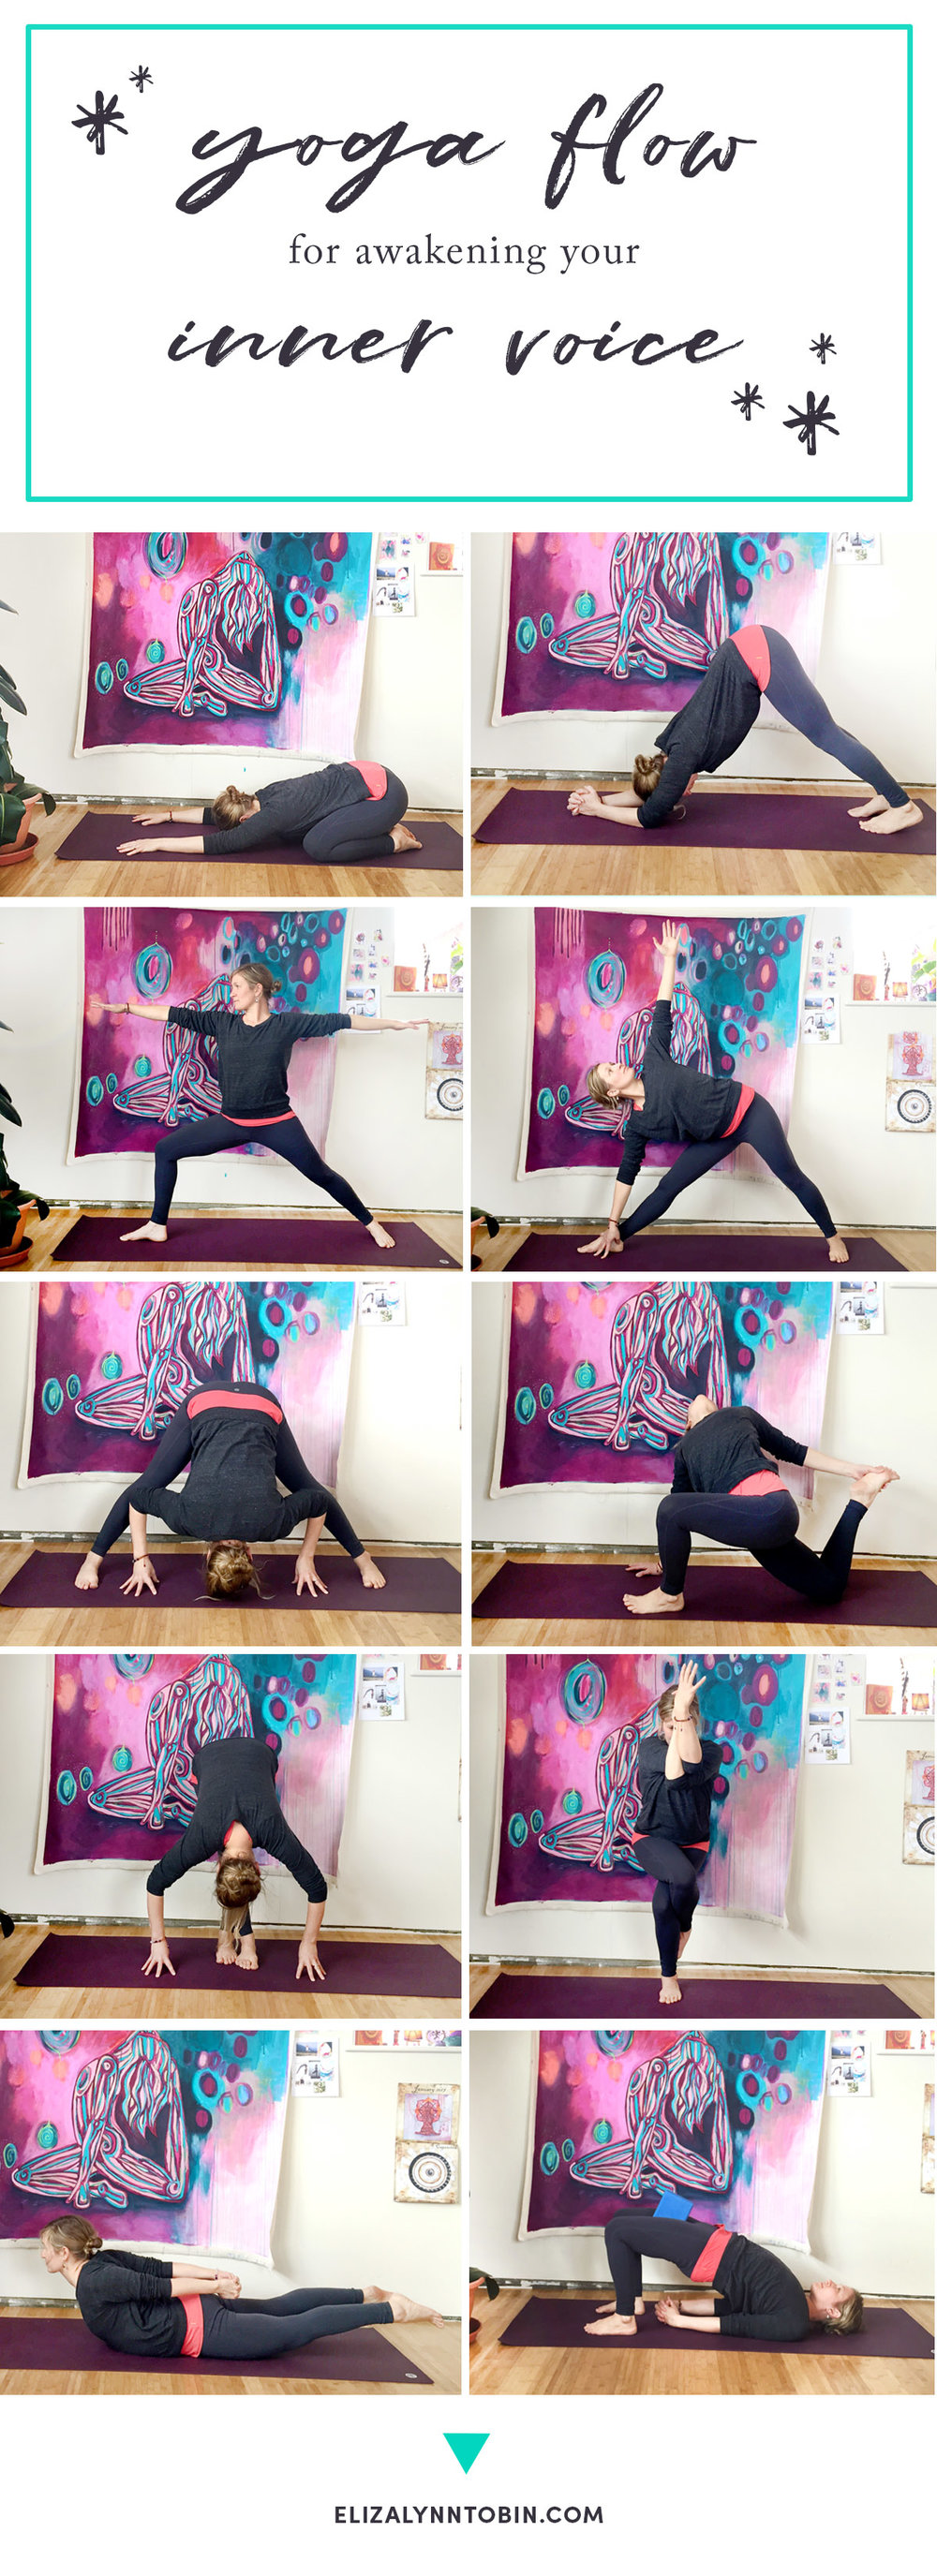 From left to right: Child's Pose, Dolphin Pose, Warrior II, Triangle, Prasarita Padottanasana (wide legged forward fold), Twisted Lizard Pose, Uttanasana (variation), Eagle Pose, Salabhasana, Bridge Pose.